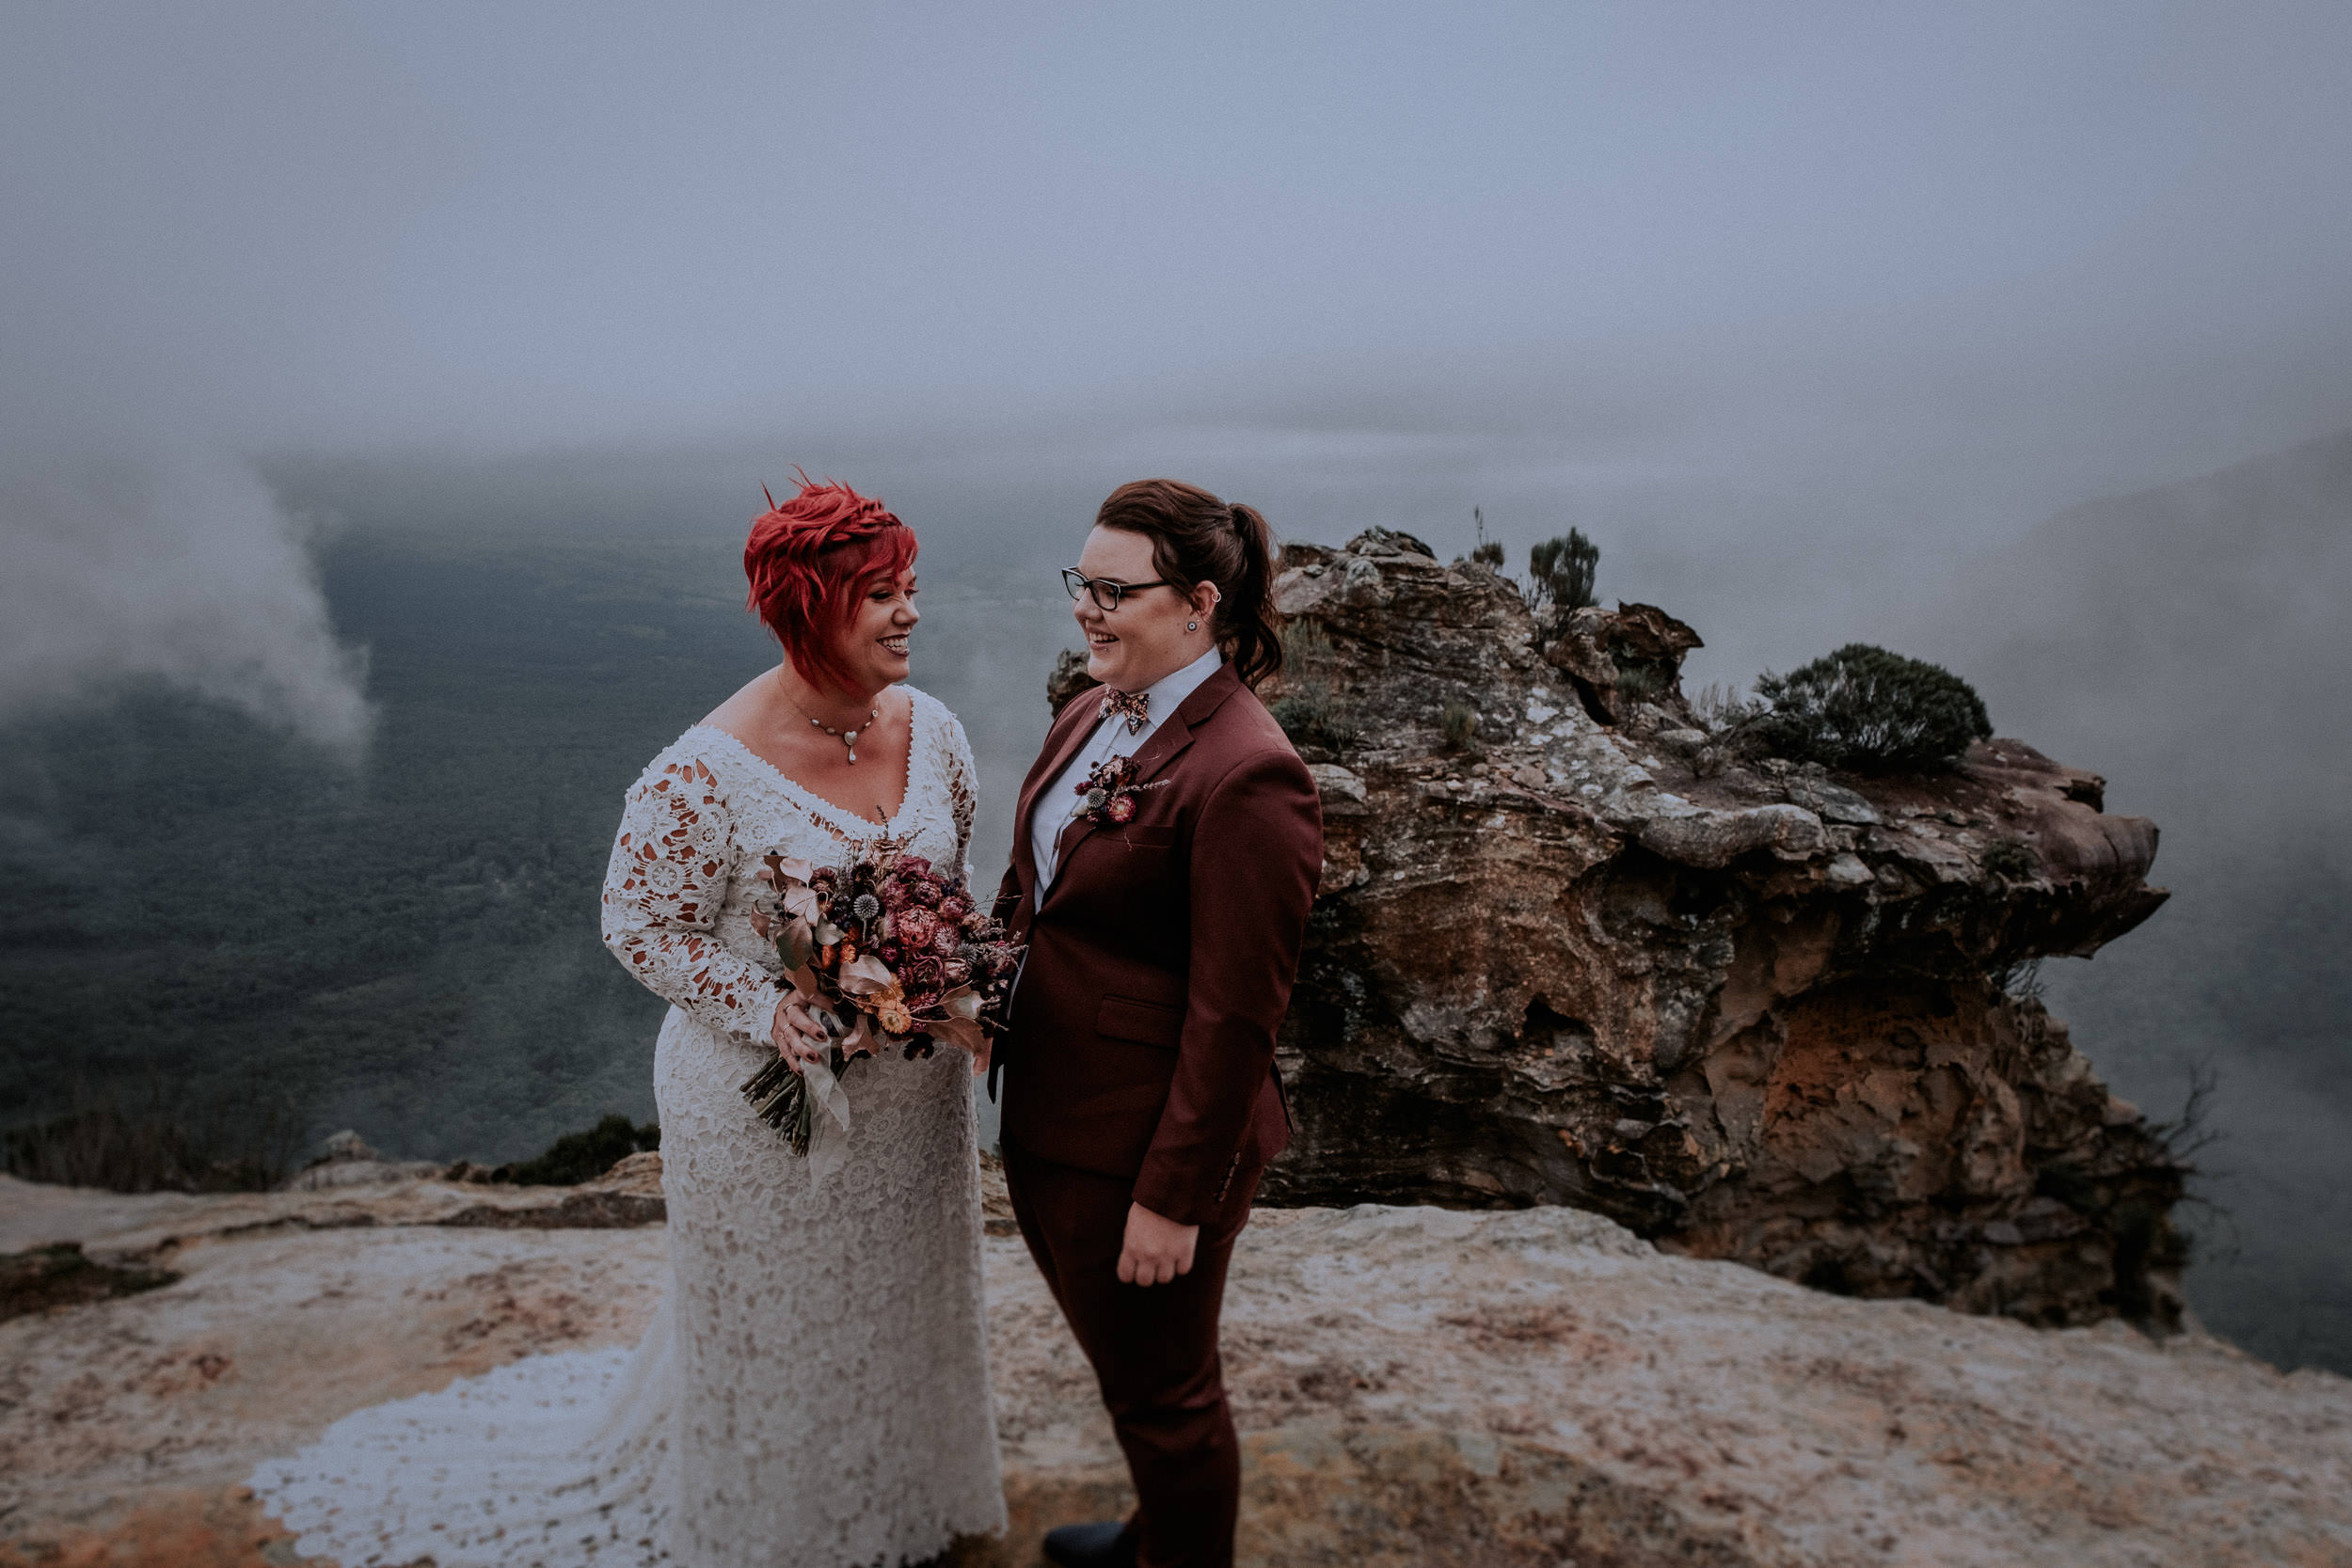 Sydney & Blue Mountains Elopement & Wedding Photography. LGBTQ+ friendly. SSM. Dancing with her. Same sex wedding. Destination wedding photographers. Emotional and Non-Traditional weddings